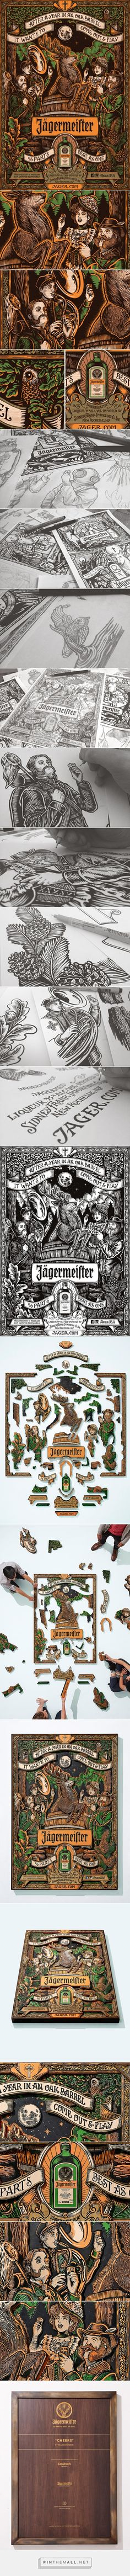 Jägermeister - 56 Parts - Best as One on Behance... - a grouped images picture - Pin Them All